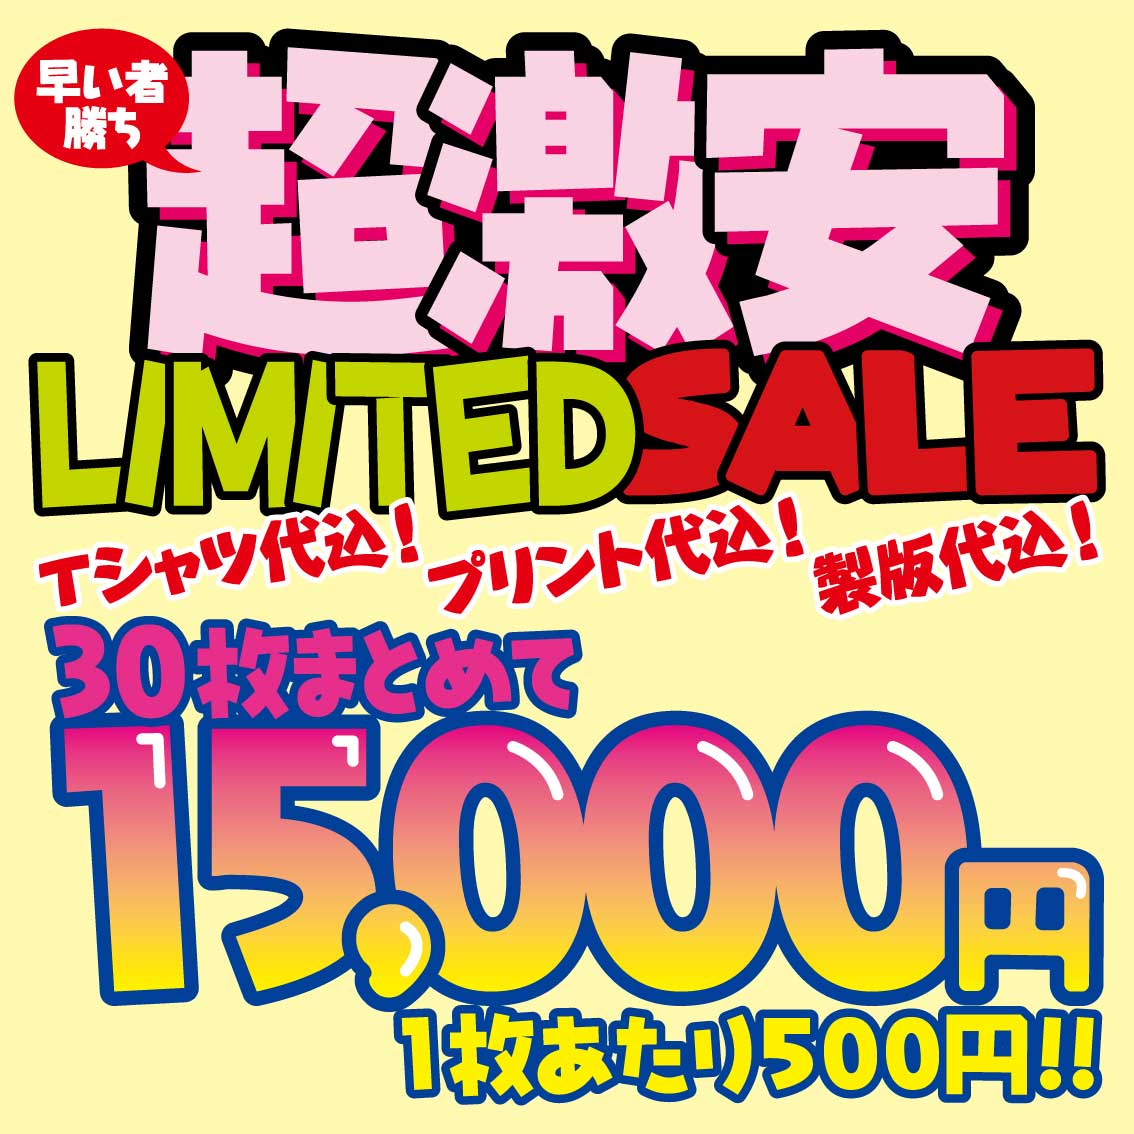 LIMITED SALE